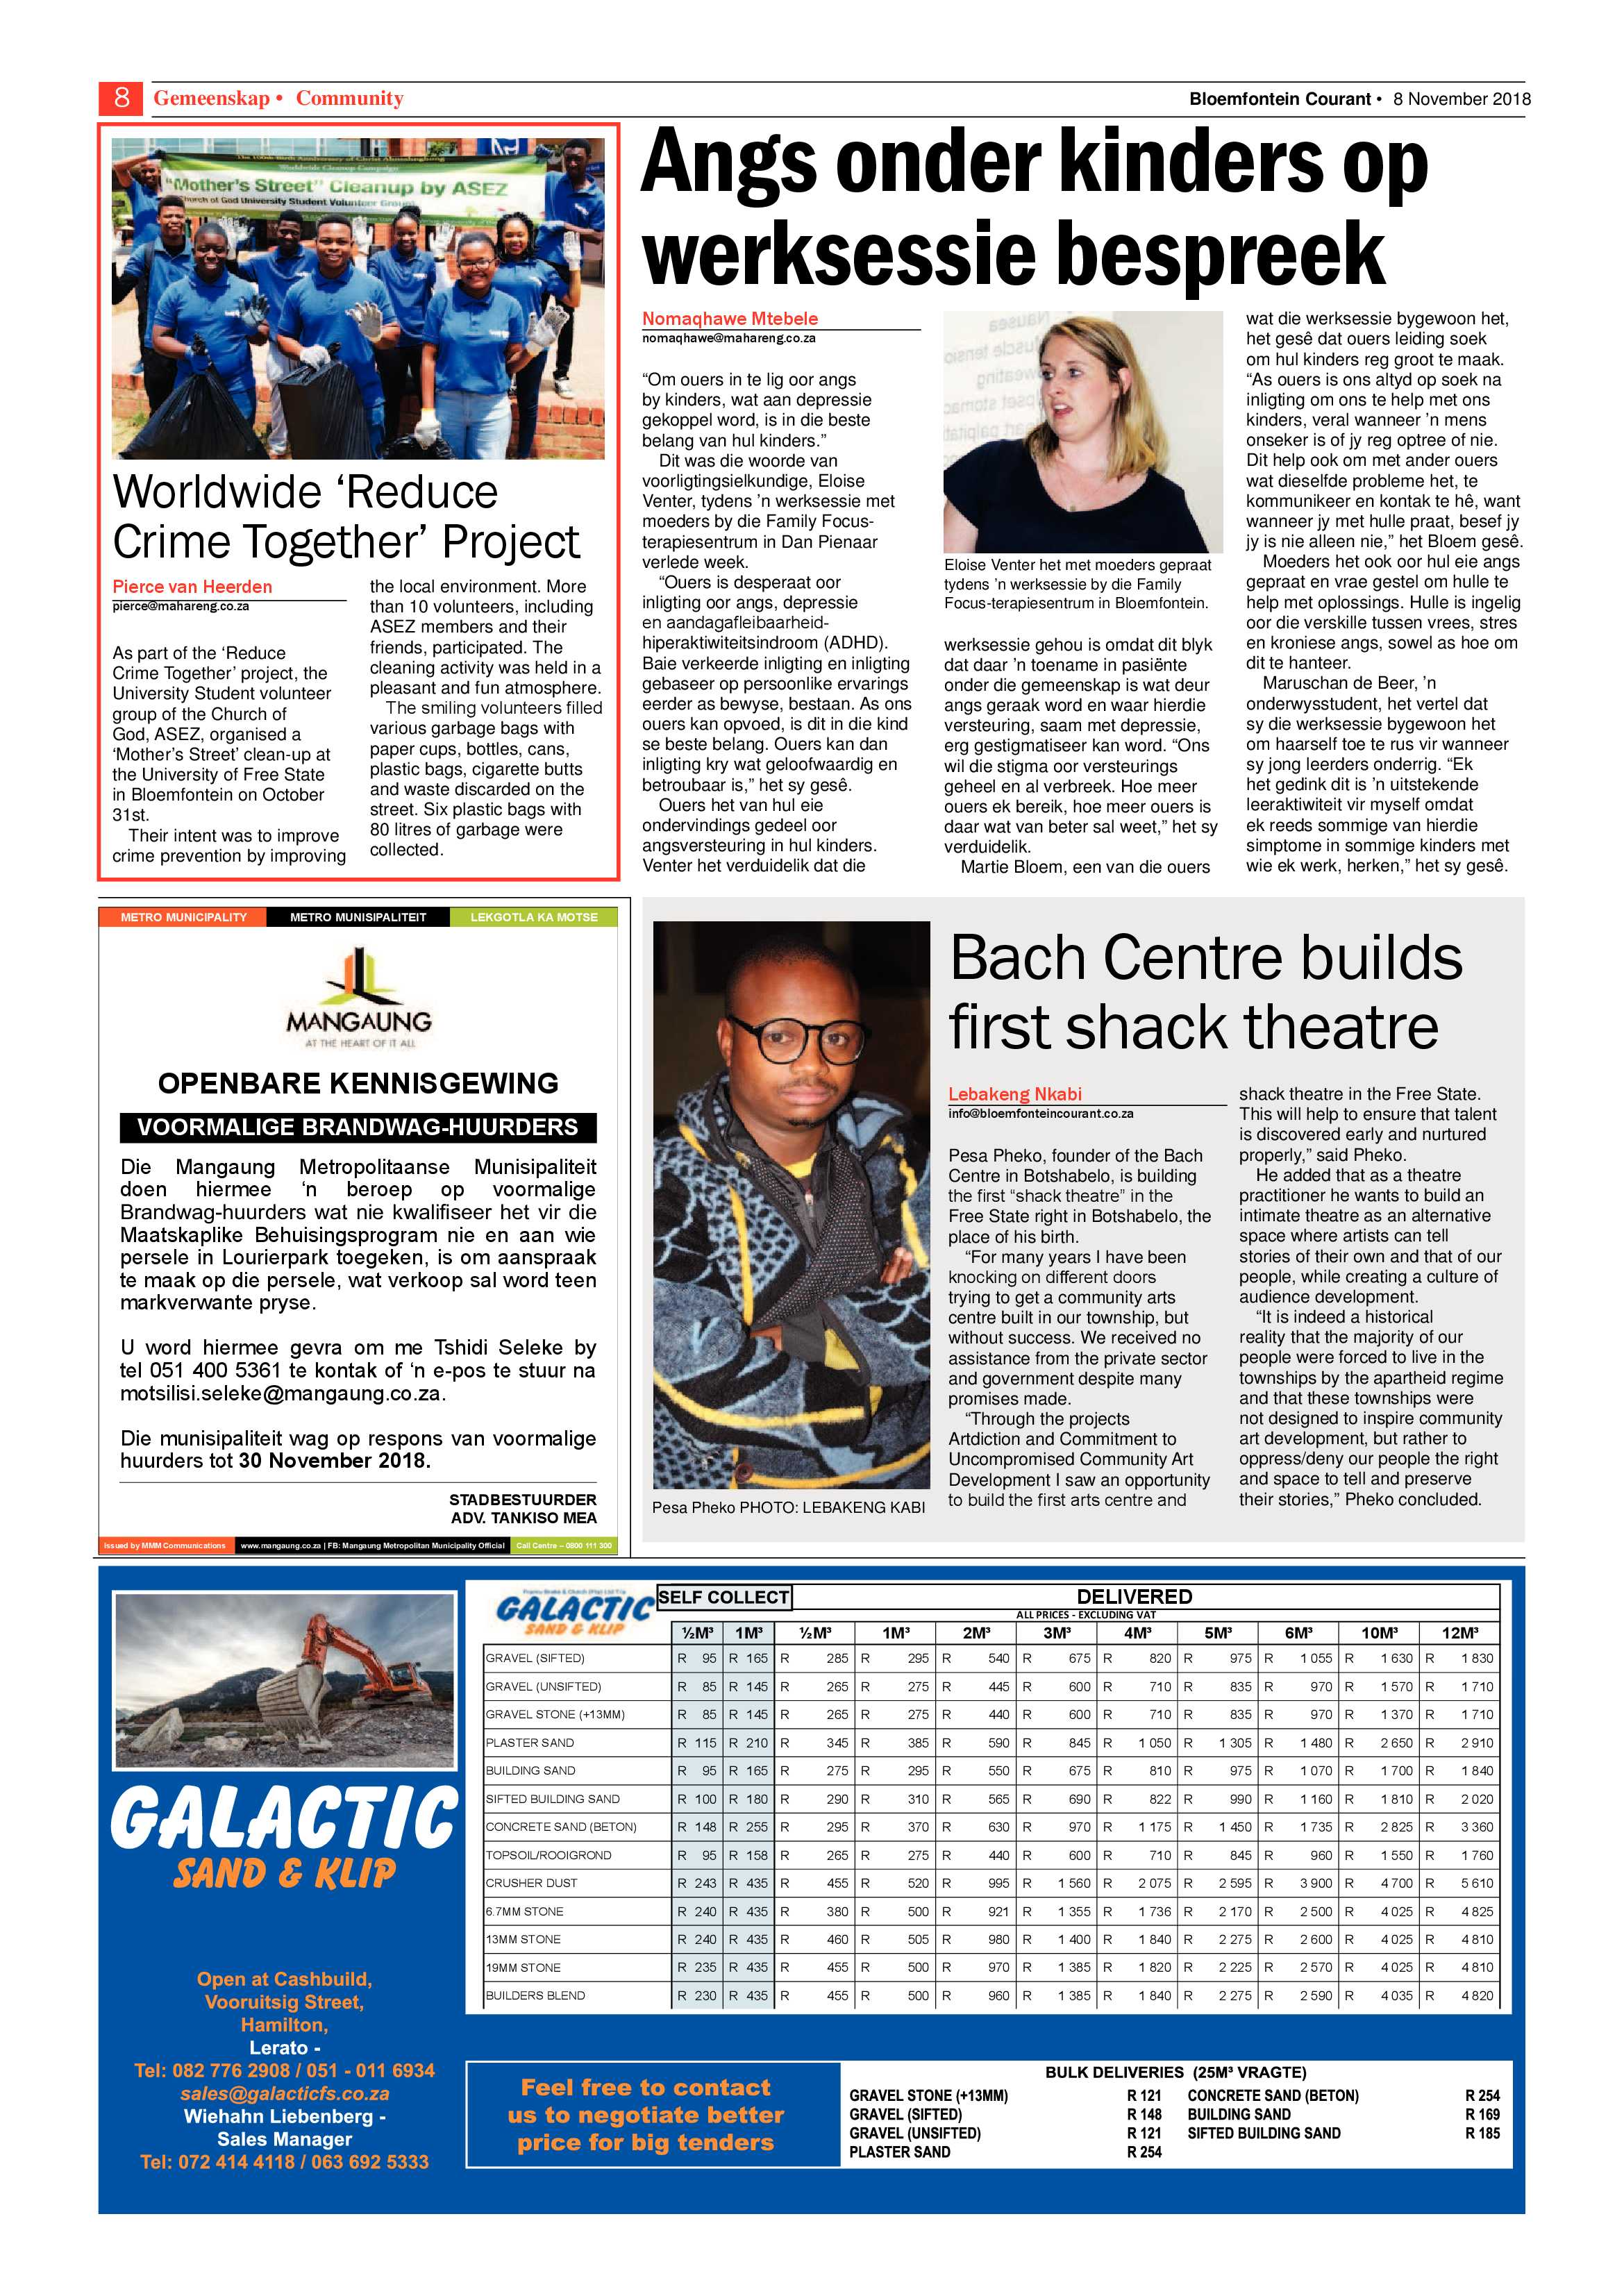 courant-8-november-2018-epapers-page-8